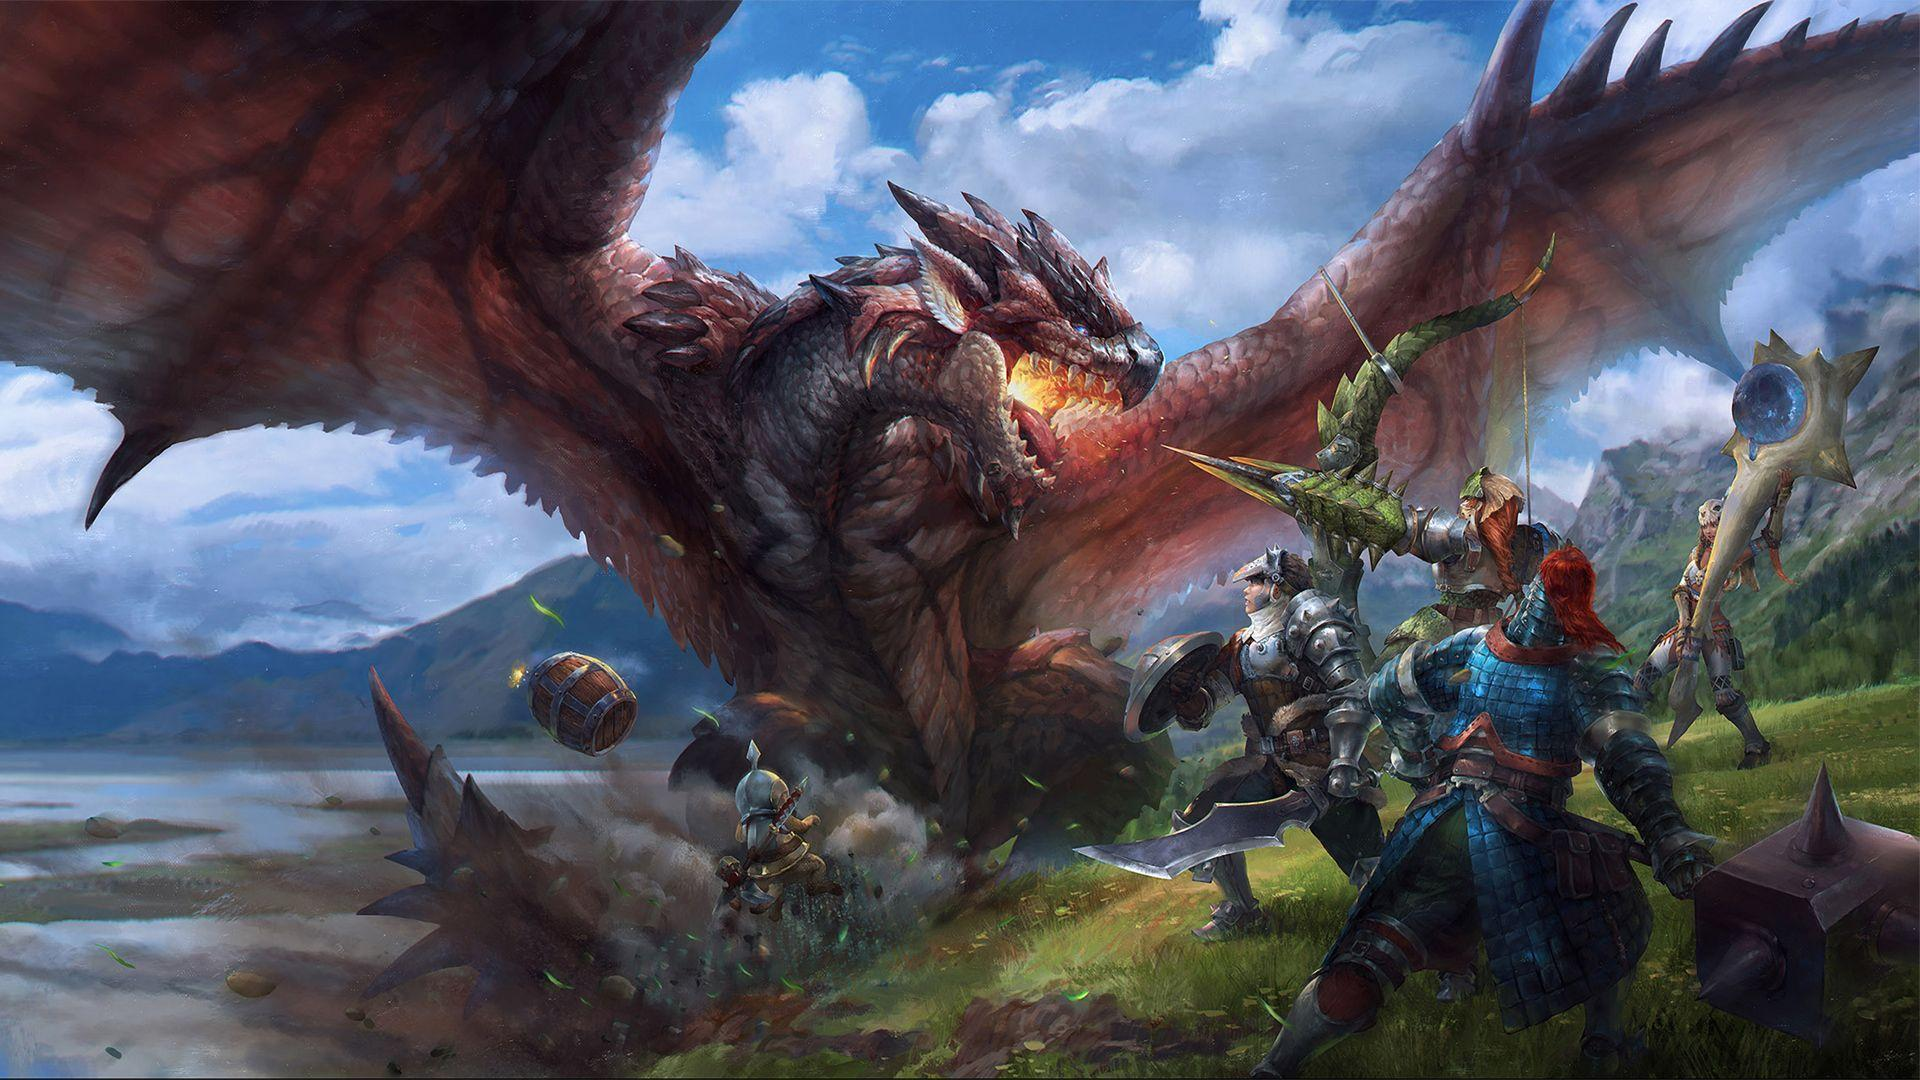 Group of hunters facing off against a dragon. Wallpapers from Monster